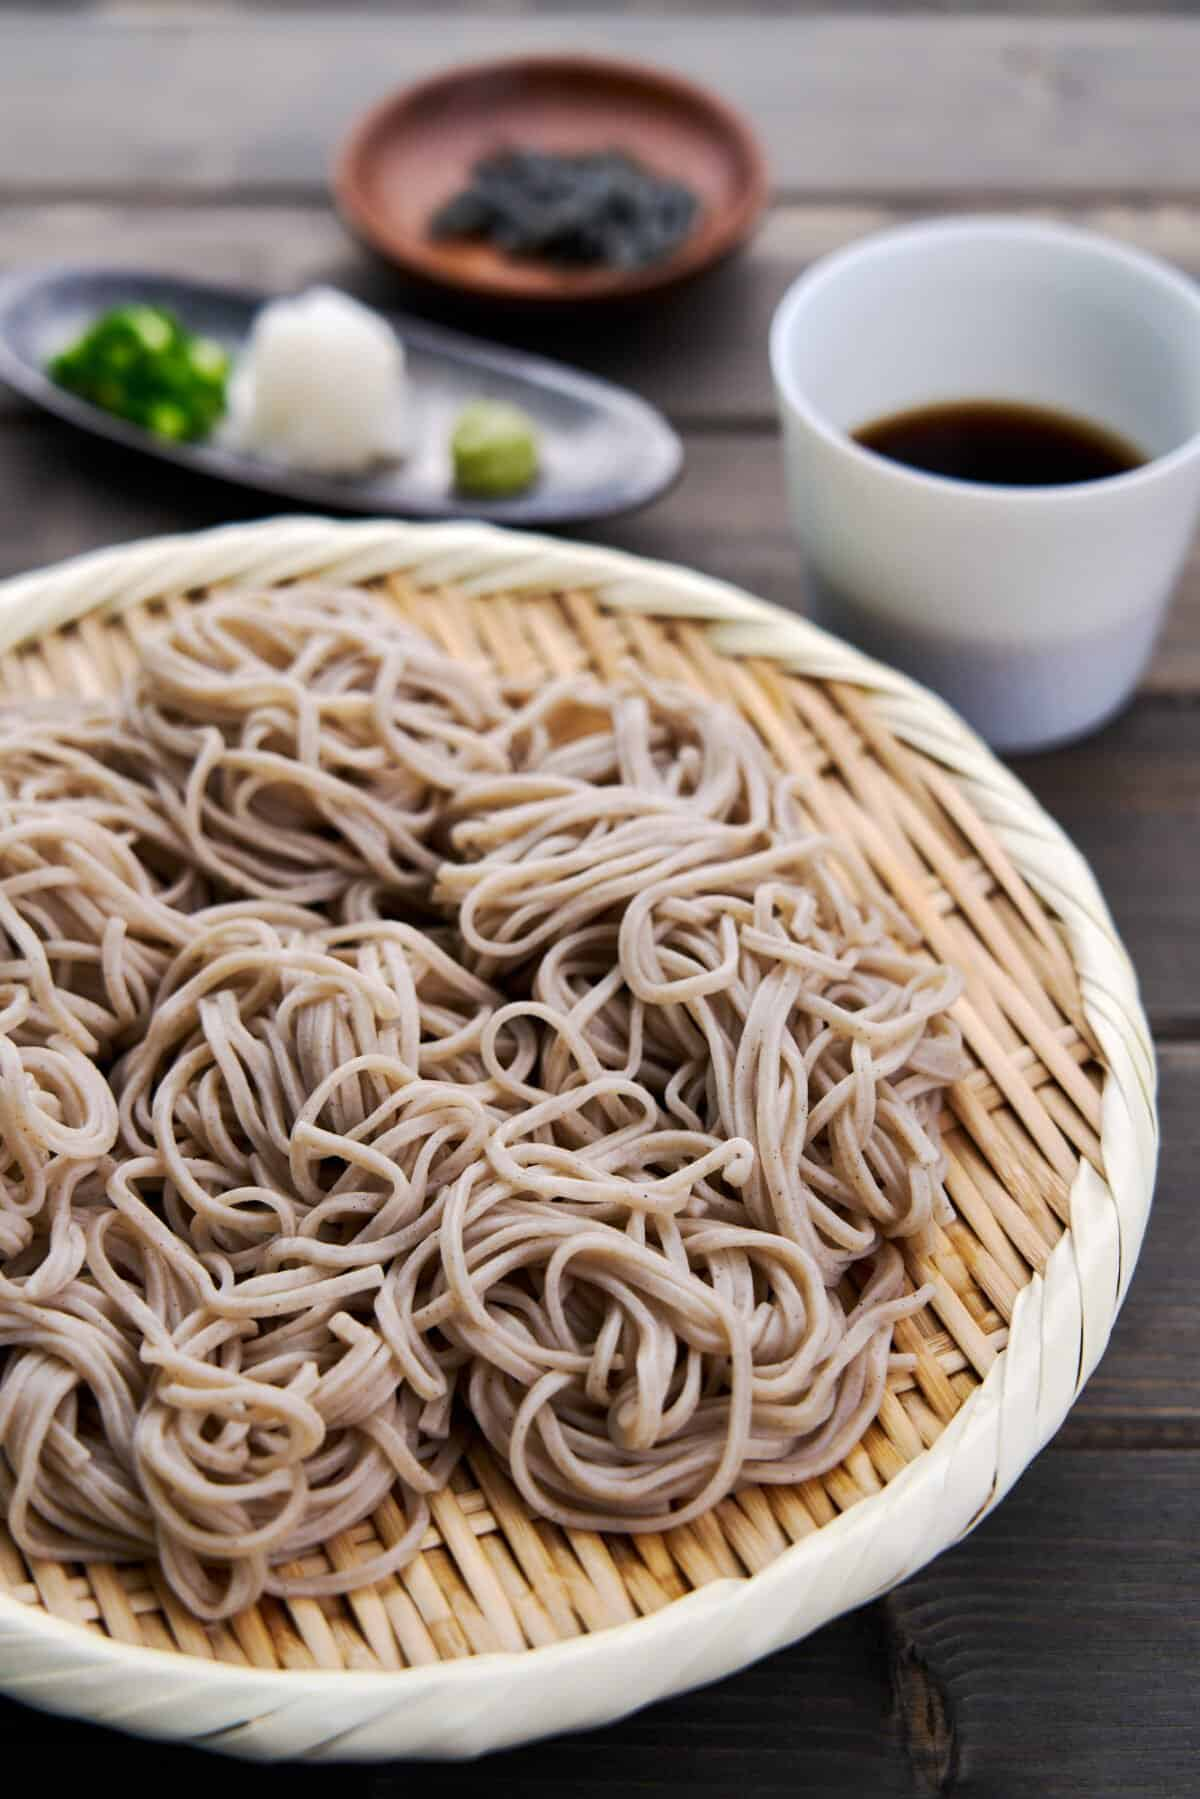 Chilled soba noodles, known as Zaru Soba in Japan is a refreshing summertime meal served with a savory dipping sauce and condiments such as wasabi, scallions, nori and grated daikon.